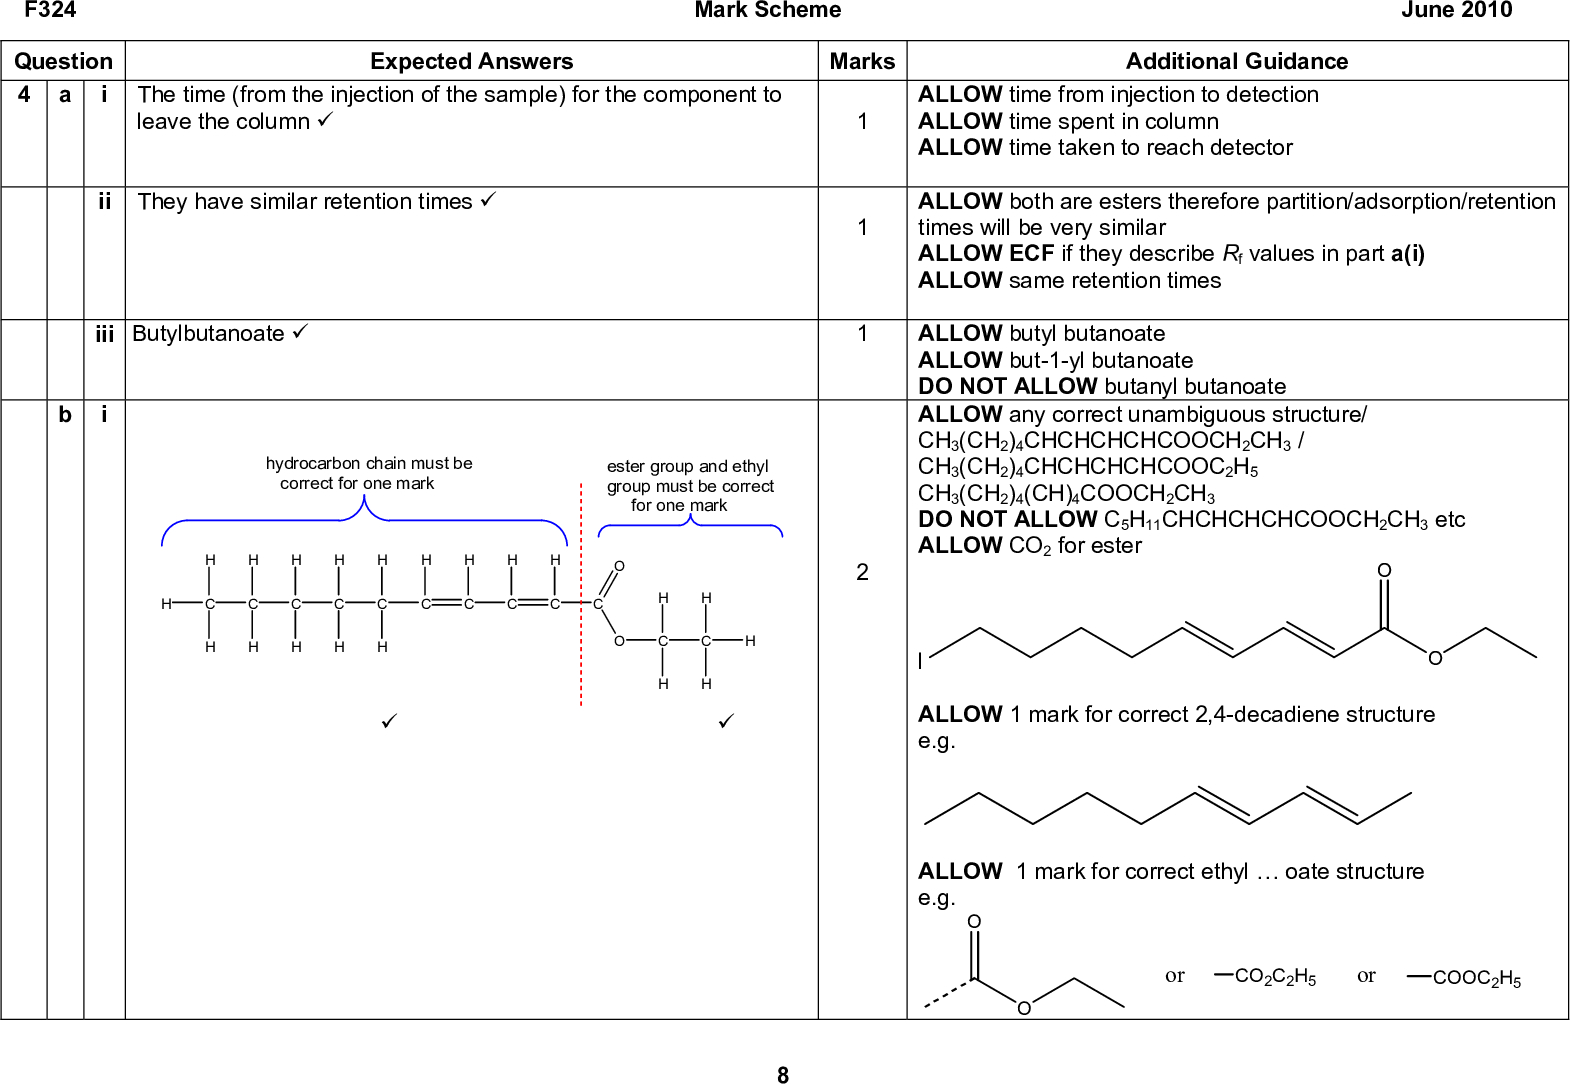 F324 Mark Scheme June 2010 i The time (from the injection of the sample) for the component to Expected Answers Marks Additional Guidance Question 4 a leave the column (cid:57) ii They have similar retention times (cid:57) iii Butylbutanoate (cid:57) hydrocarbon chain must be correct for one mark ester group and ethyl group must be correct for one mark (cid:57) (cid:57) ALLOW time from injection to detection ALLOW time spent in column ALLOW time taken to reach detector ALLOW both are esters therefore partition/adsorption/retention times will be very similar ALLOW ECF if they describe Rf values in part a(i) ALLOW same retention times ALLOW butyl butanoate ALLOW but-1-yl butanoate DO NOT ALLOW butanyl butanoate ALLOW any correct unambiguous structure/ CH3(CH2)4CHCHCHCHCOOCH2CH3 / CH3(CH2)4CHCHCHCHCOOC2H5 CH3(CH2)4(CH)4COOCH2CH3 DO NOT ALLOW C5H11CHCHCHCHCOOCH2CH3 etc ALLOW CO2 for ester l ALLOW 1 mark for correct 2,4-decadiene structure e.g. ALLOW 1 mark for correct ethyloate structure e.g. or CO2C2H5 or COOC2H5<br />  Expected Answers Marks Additional Guidance Mark Scheme June 2010 ALLOW H2C CH H2C 2 or H2SO4/Na 2Cr2O7 - any other O any orientation of the three fatty acids ALLOW H+ & Cr2O7 oxidising agent or other named acidplease consult with TL ALLOW LiAlH4 as alternative to NaBH4 phenylethanoic acid & phenylethanol must be unambiguously identified by either name or formula DO NOT ALLOW or oxidised to form(a carboxylic) acid or reduced to form alcohol for marks 2 and 4 ALLOW conc H2SO4 DO NOT ALLOW dilute or H2SO4(aq) DO NOT ALLOW just acid catalyst DO NOT ALLOW HCl, HNO3 Please annotate, use ticks to show where marks are awarded H2C CH H2C F324 Question ii if either phenylethanoic acid or 2- phenyethanol not preparedautomatically lose two marks 1. react phenylethanal with H2SO4/K2Cr2O7(cid:57) 2. to get phenylethanoic acid/C6H5CH2COOH (cid:57) mark 2 can be scored if dichromate is used without being acidified 3. react phenylethanal with NaBH4 (cid:57) 4. to get 2-p